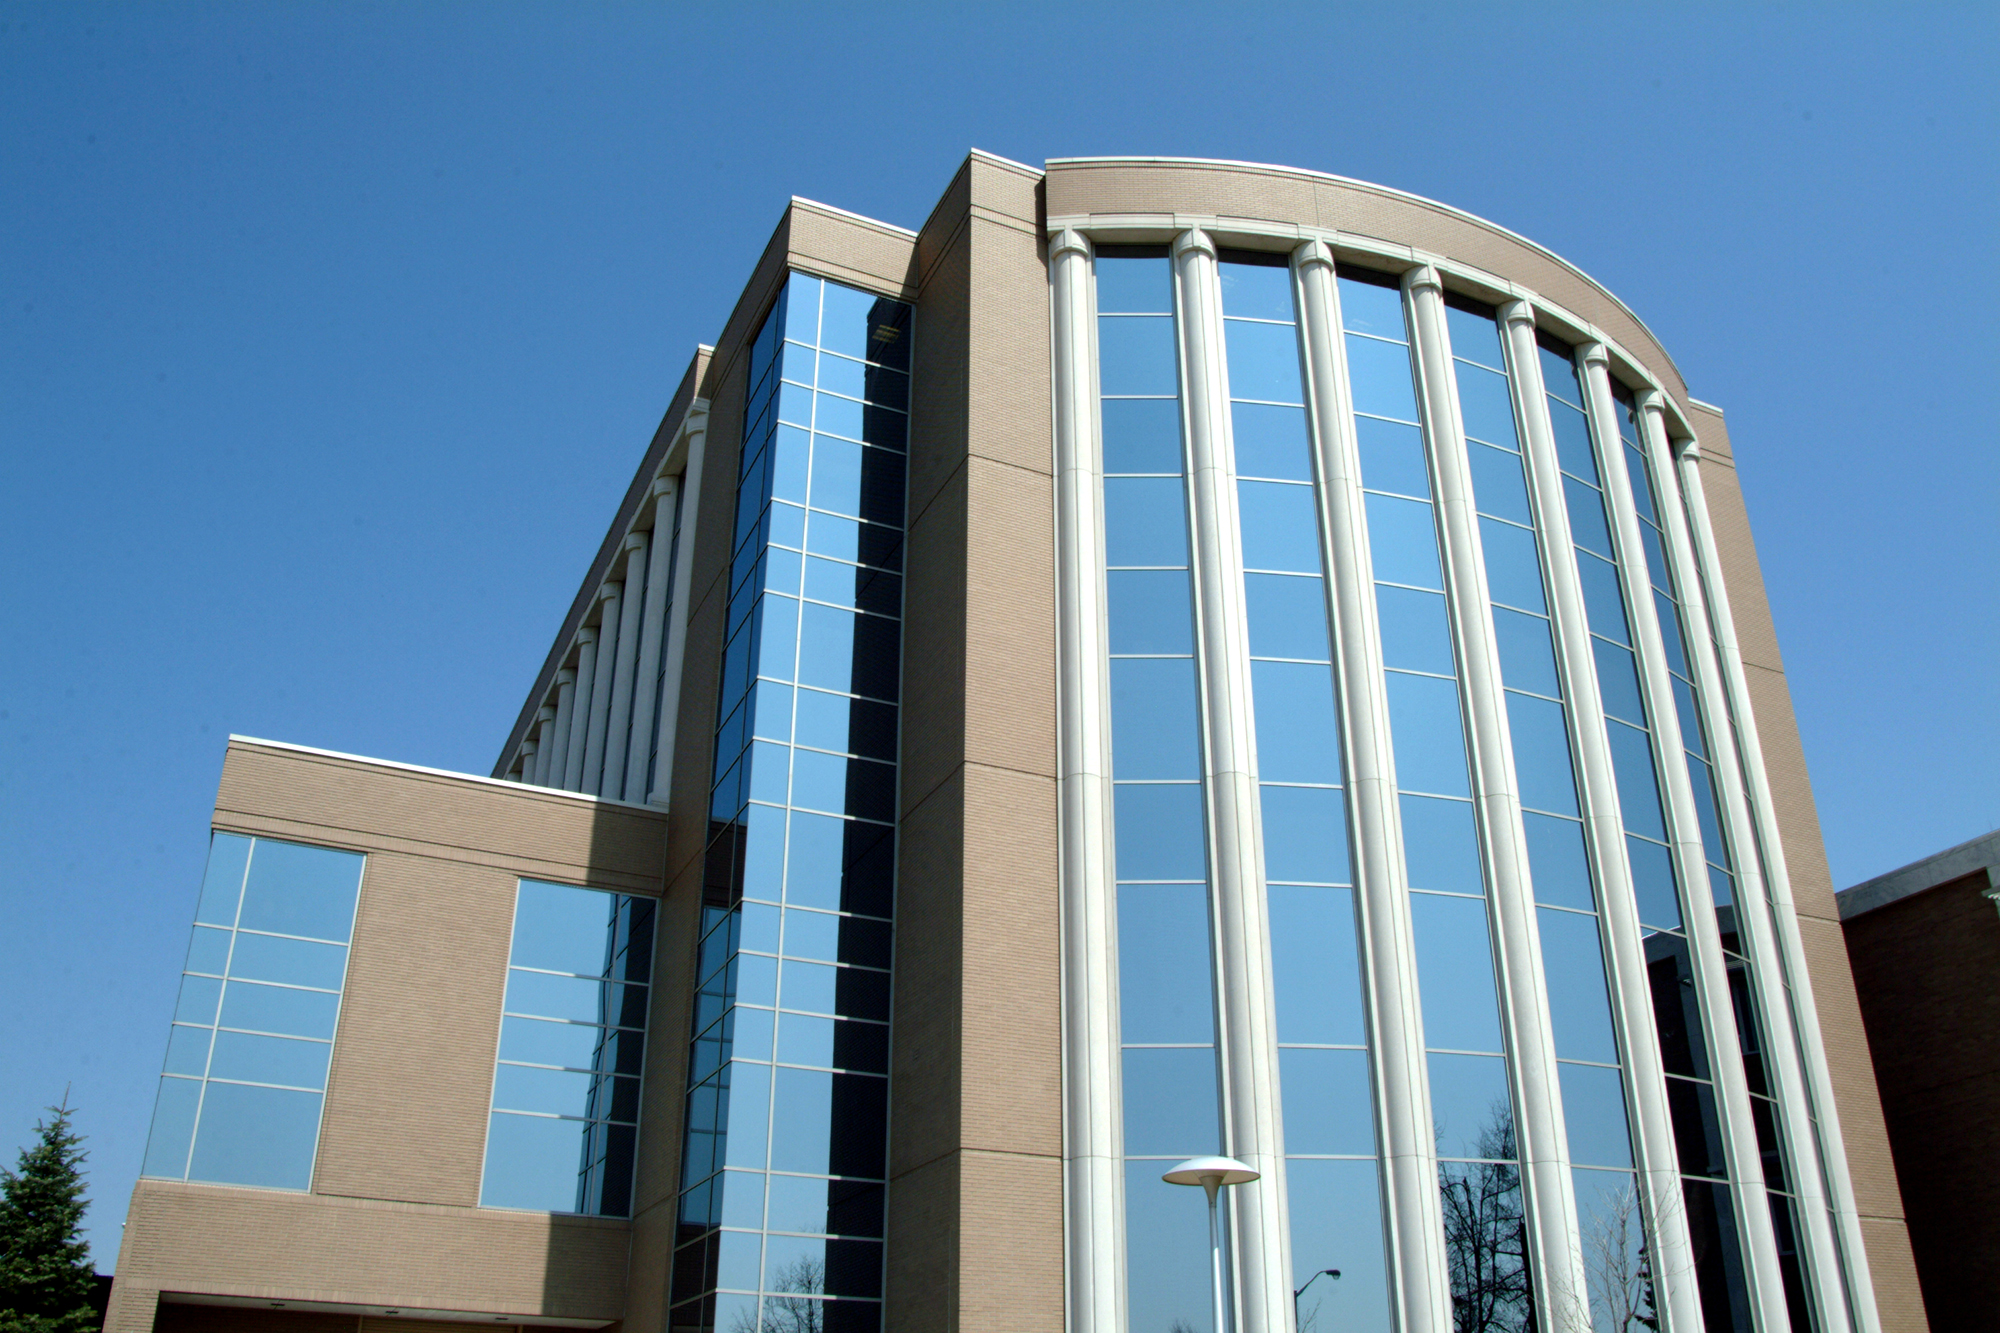 Oakland County Courthouse